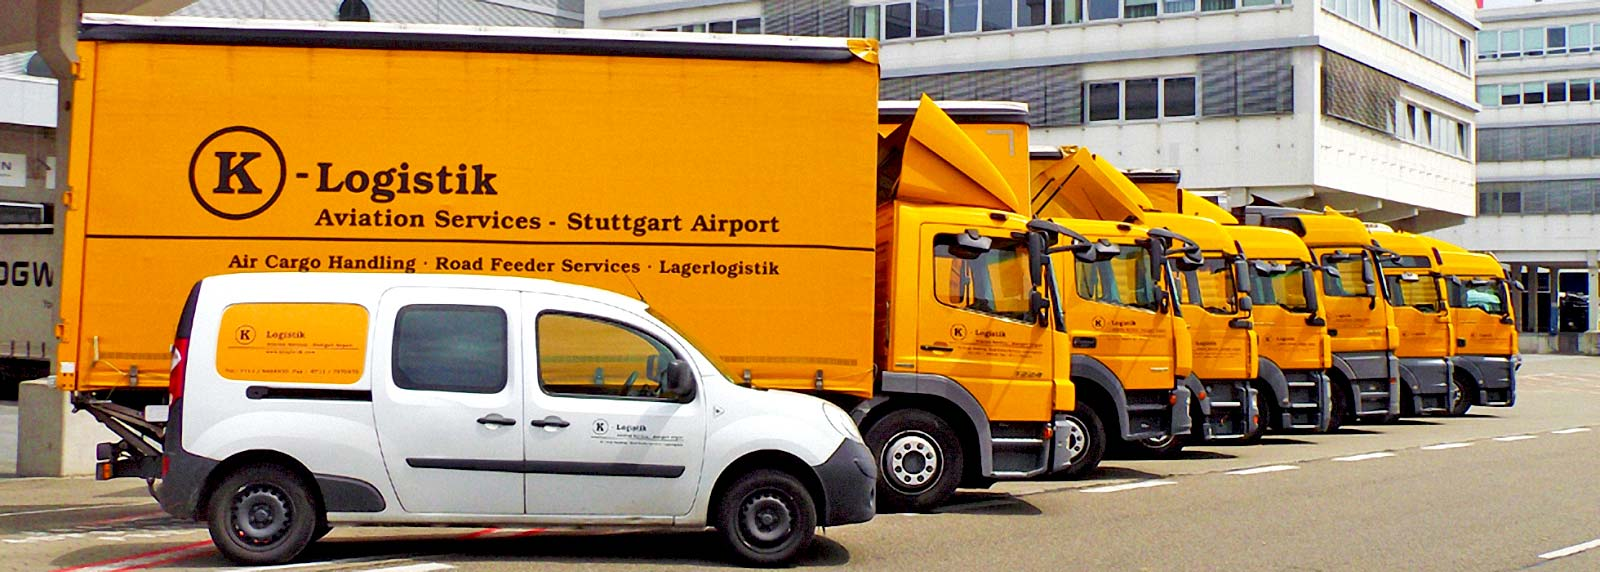 K-Logistik - Air Cargo Handling u. Road Feeder Service